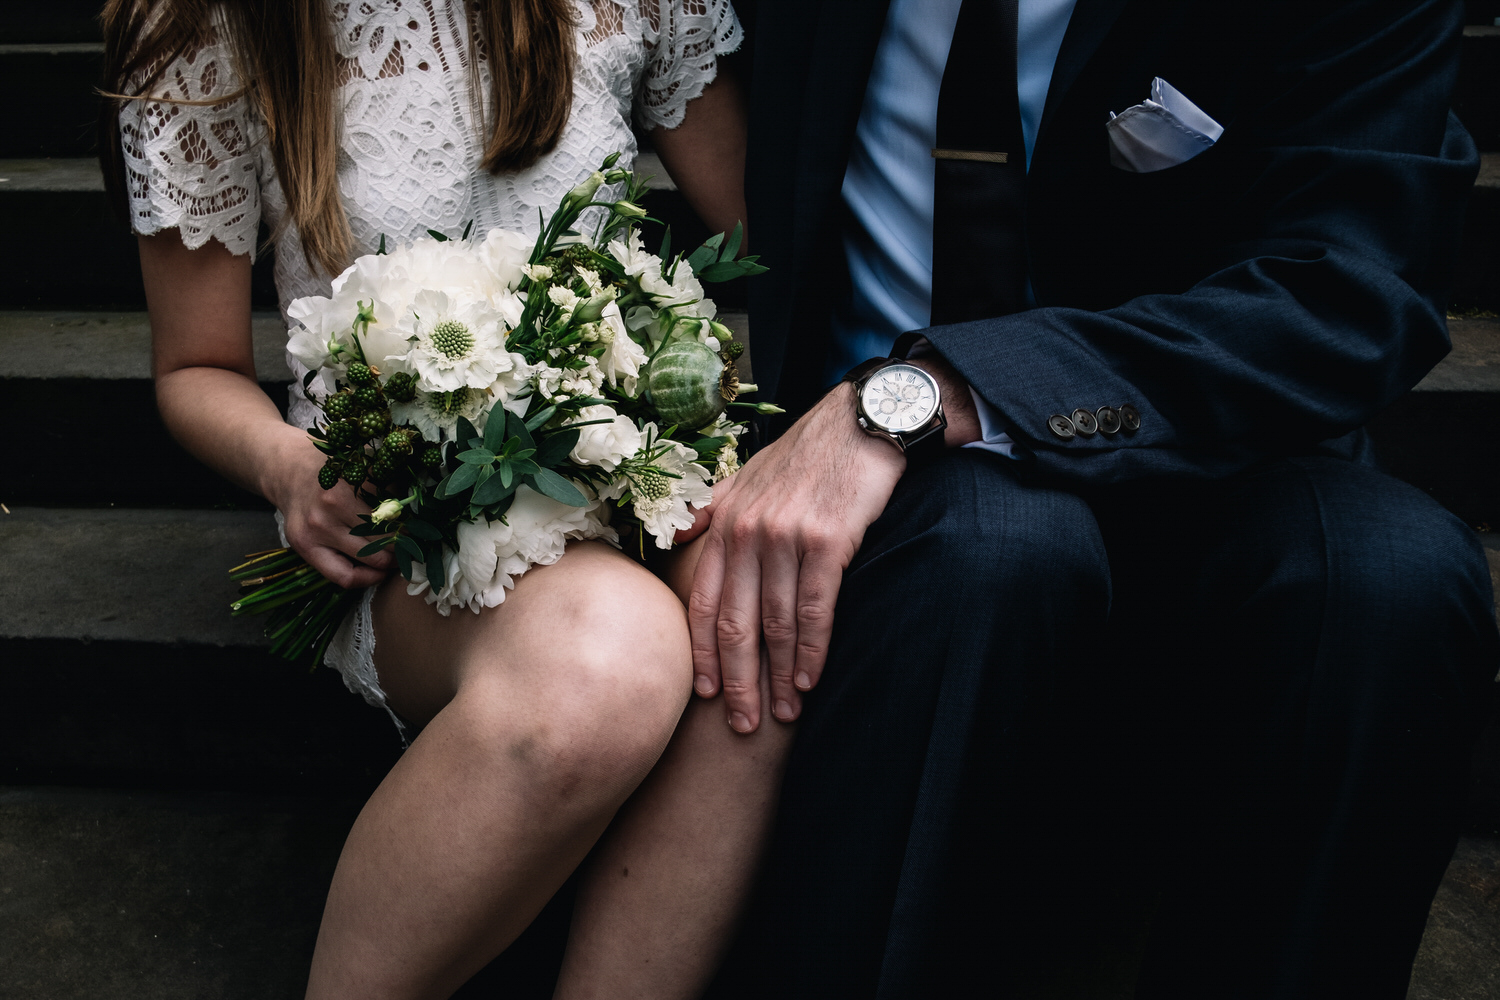 Groom's hand is placed on the bride's knee